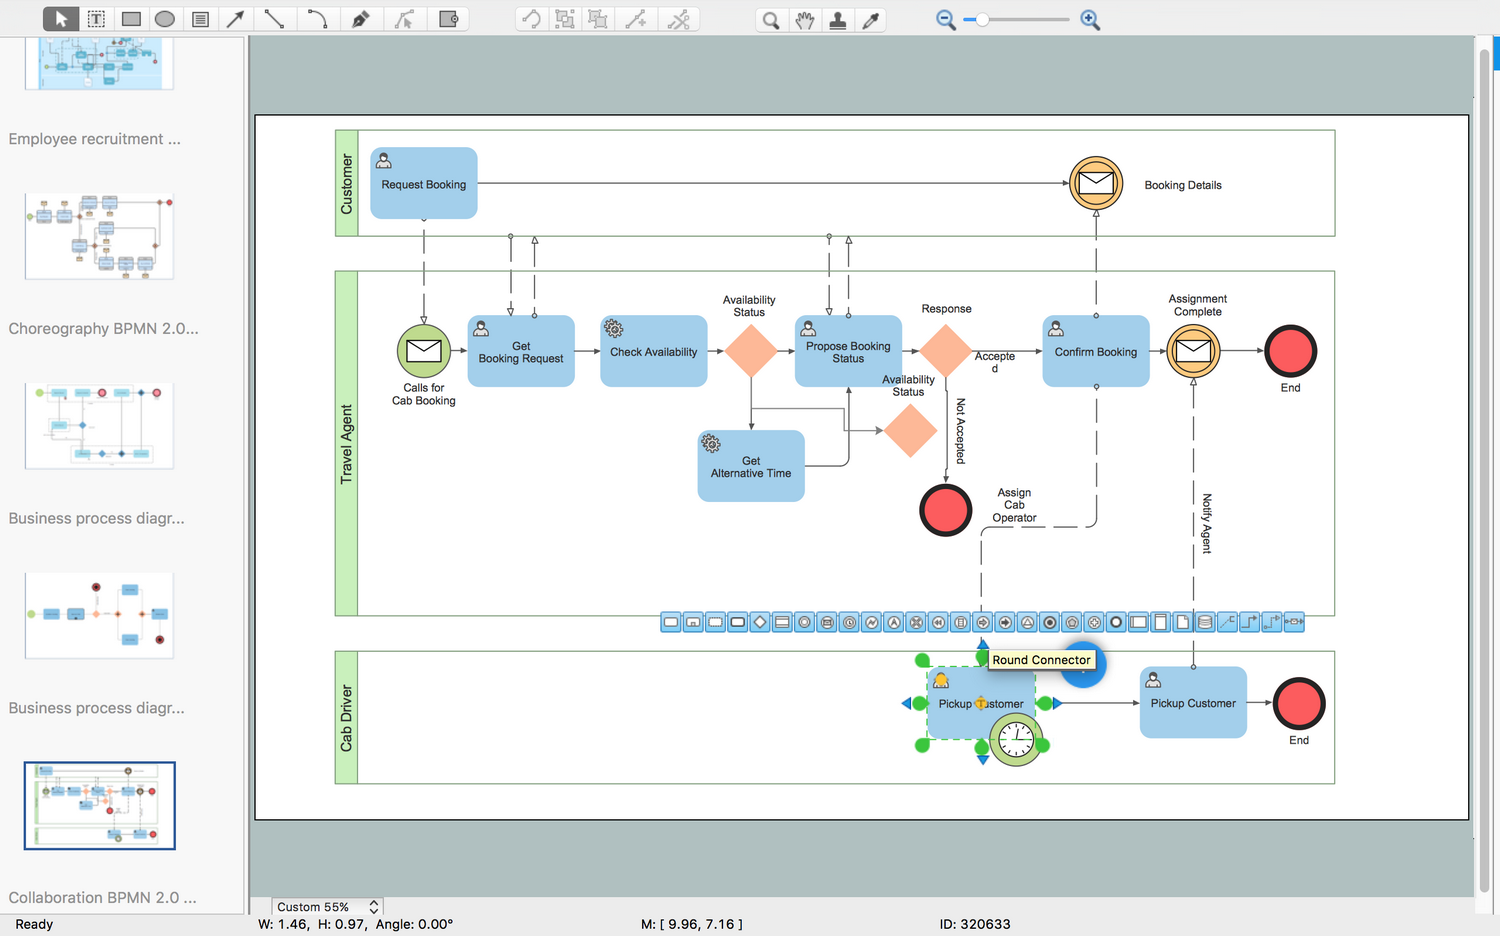 Business Process Modeling Diagram - Collaboration BPMN2.0